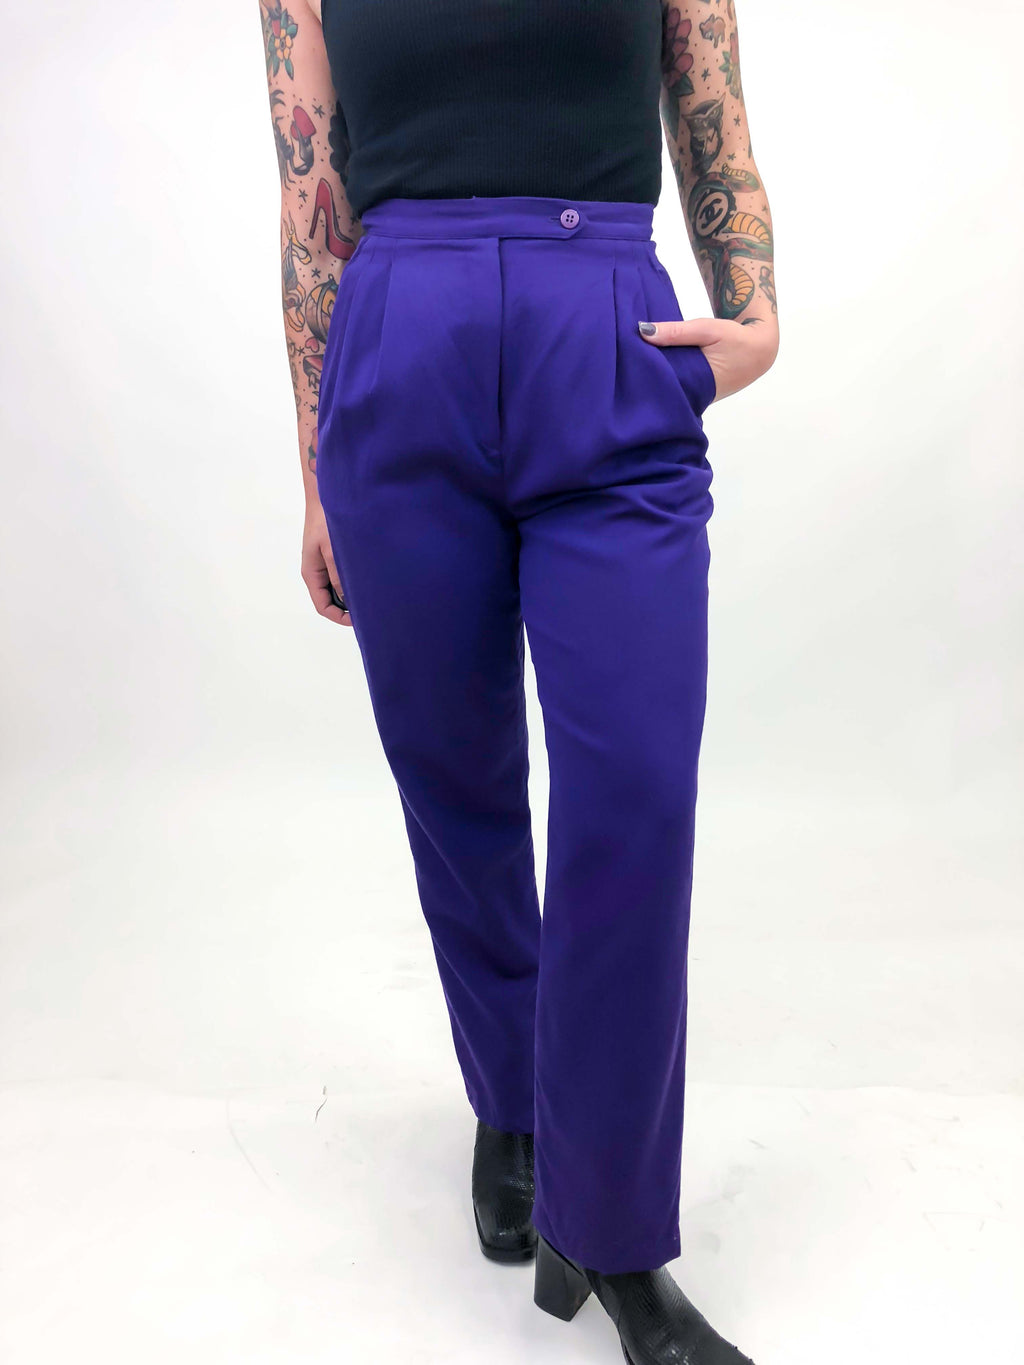 Vintage Royal Purple Trousers : XS/ Small : The Royal Pant